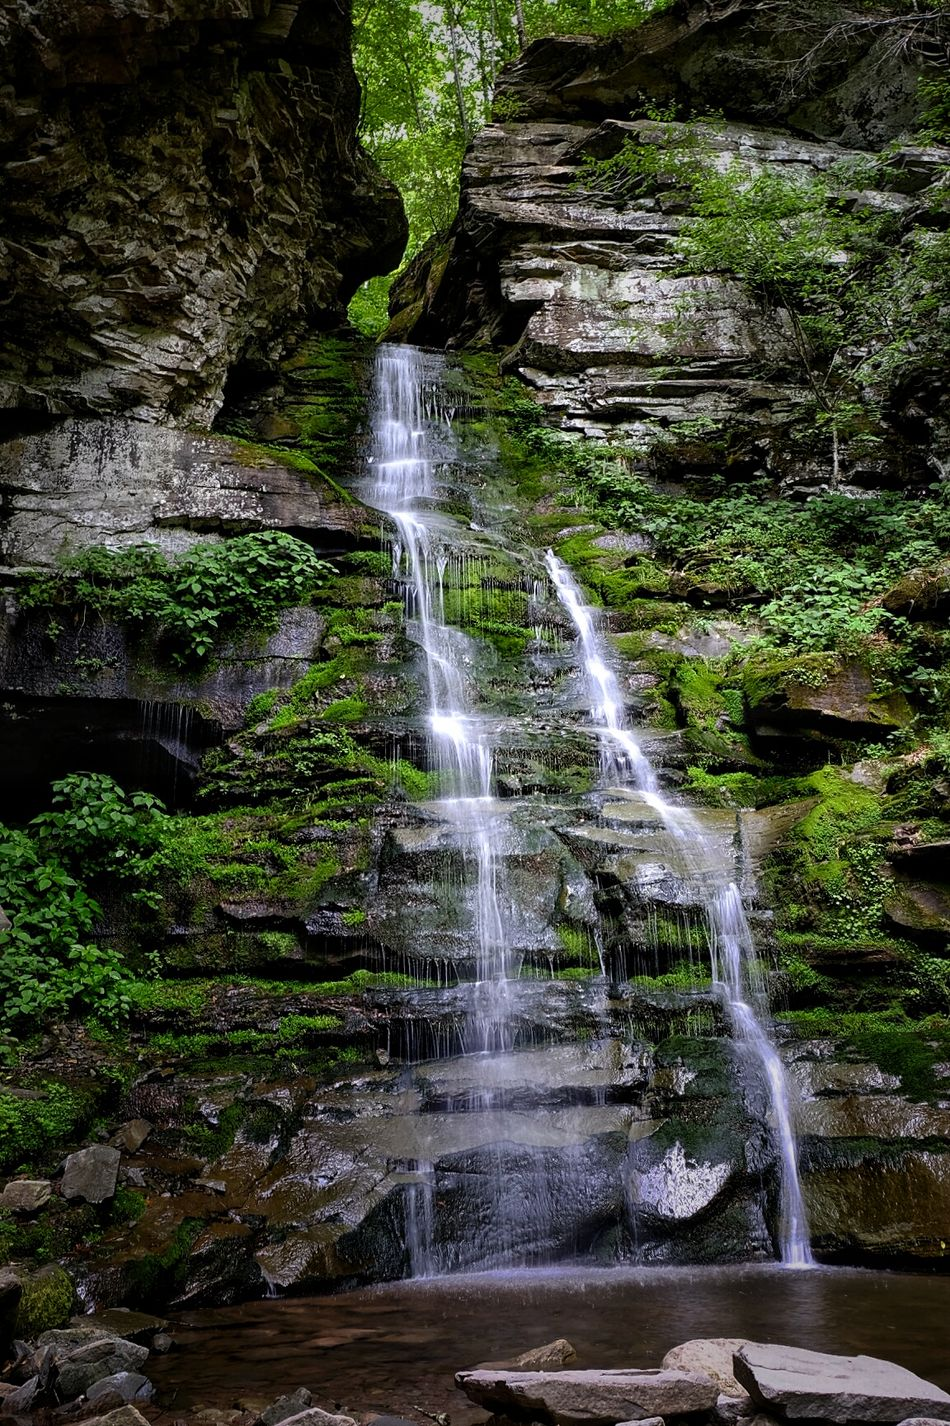 Waterfall Outdoor Photography Forest Nature FUJIFILM X-T1 Falls Handheld 1/4s Spectacular Awesome Natural Beauty Motorcycle Travels Motorcycle Ride